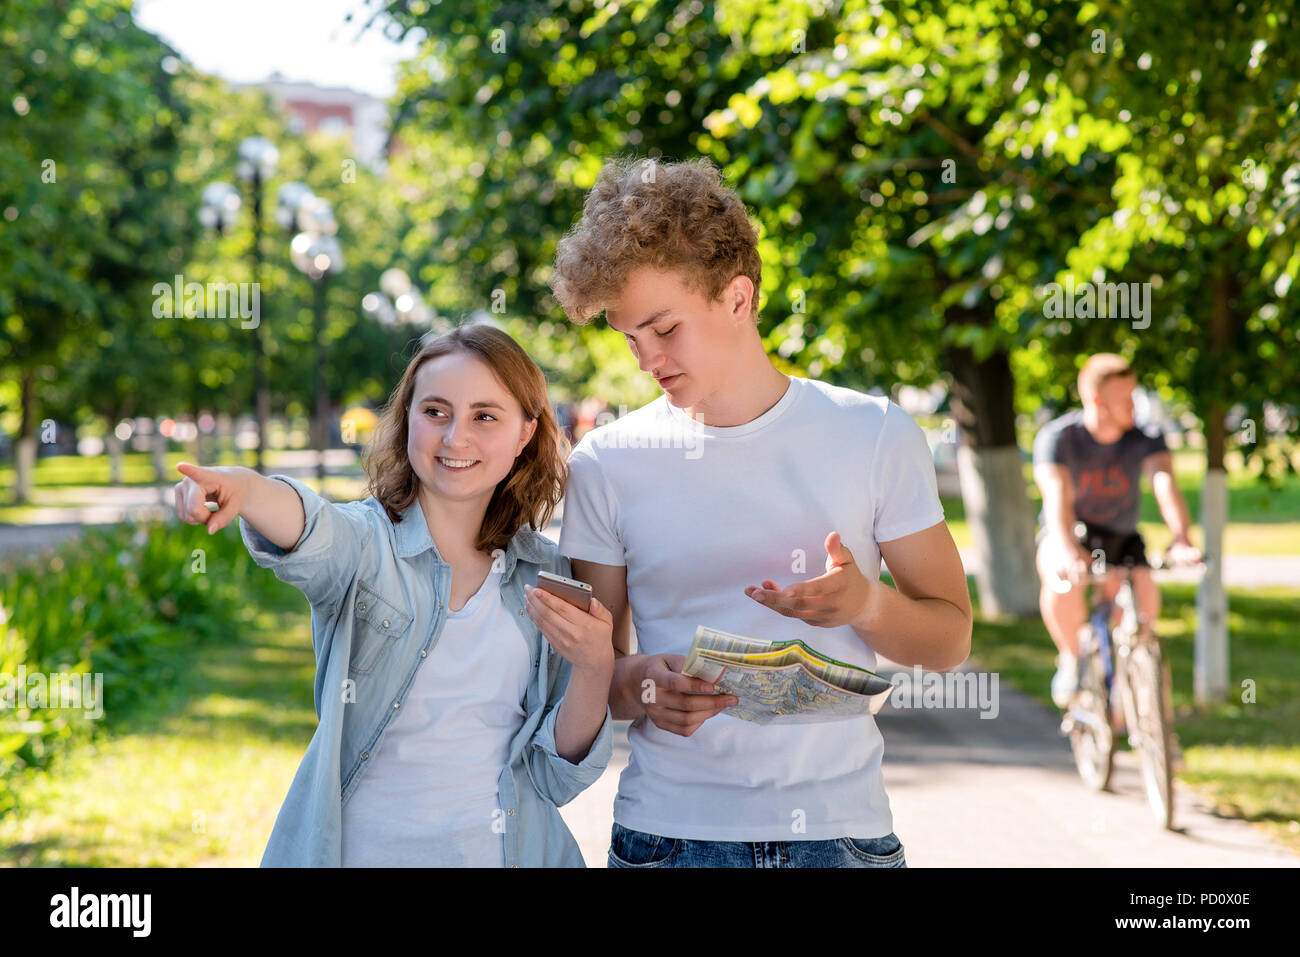 Boy and girl in summer in nature. Holds a roadmap and a smartphone. Indicates direction of movement. Travel around the city. A cyclist is passing by. Tourists in the city. - Stock Image